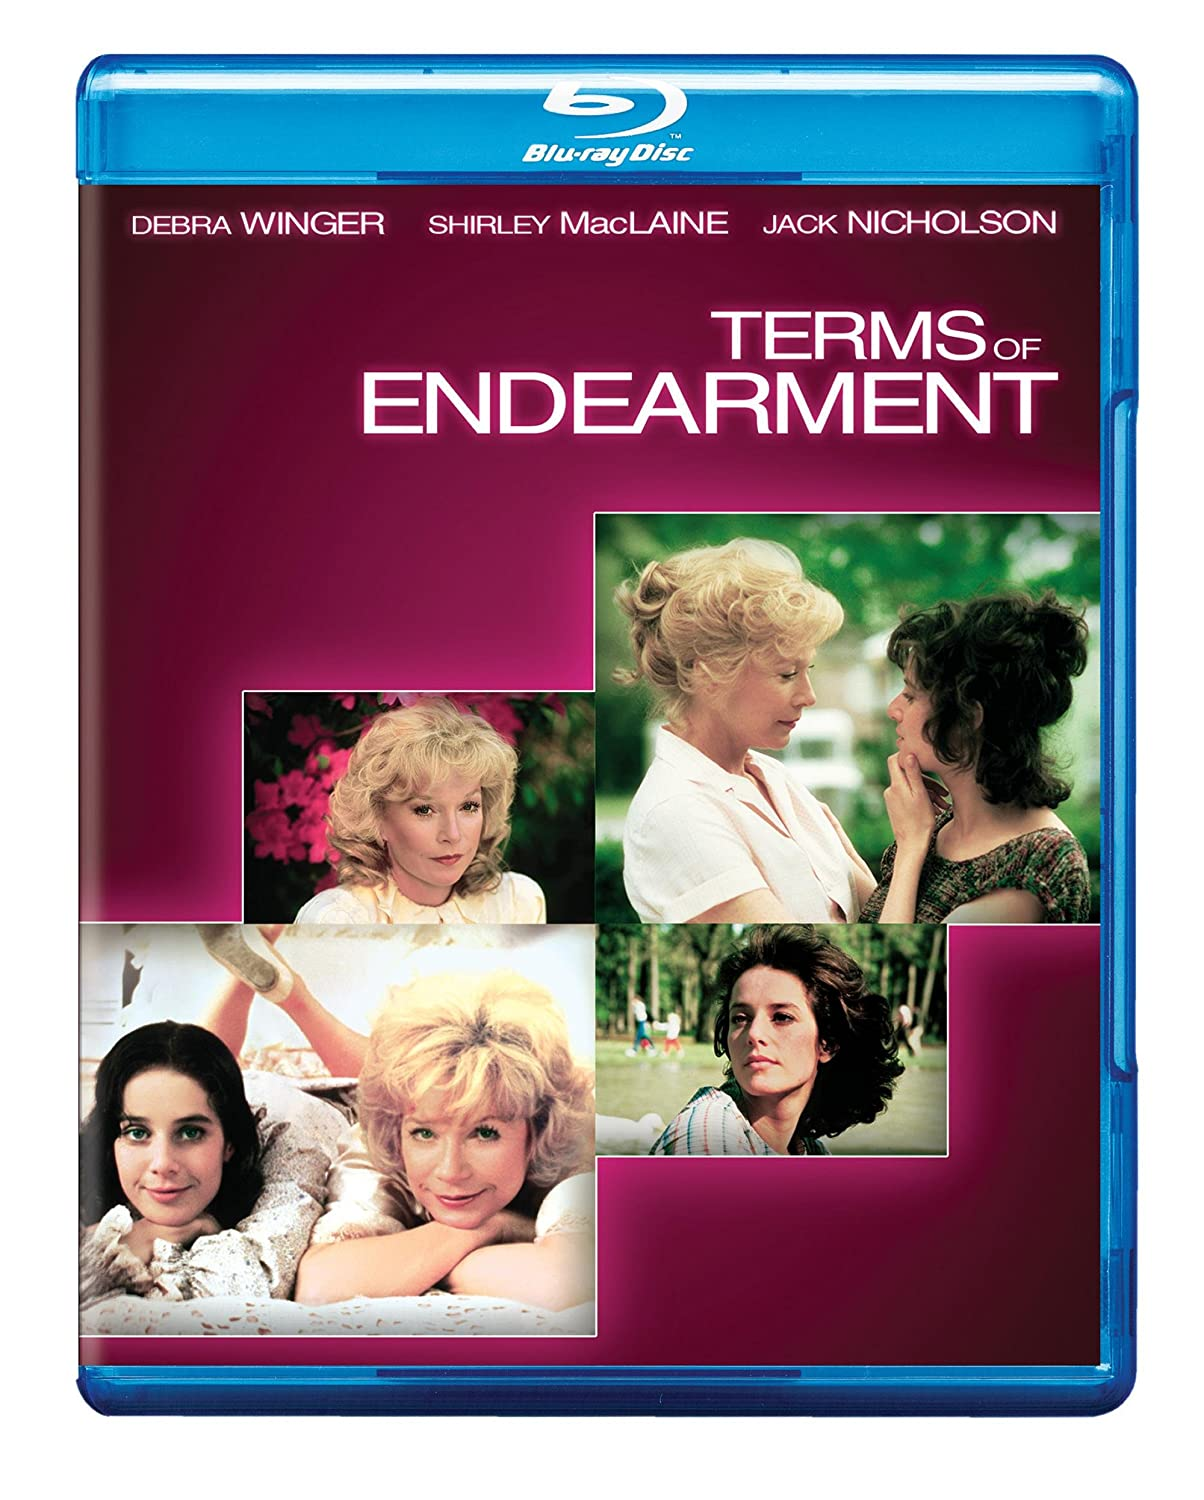 Popular terms of endearment